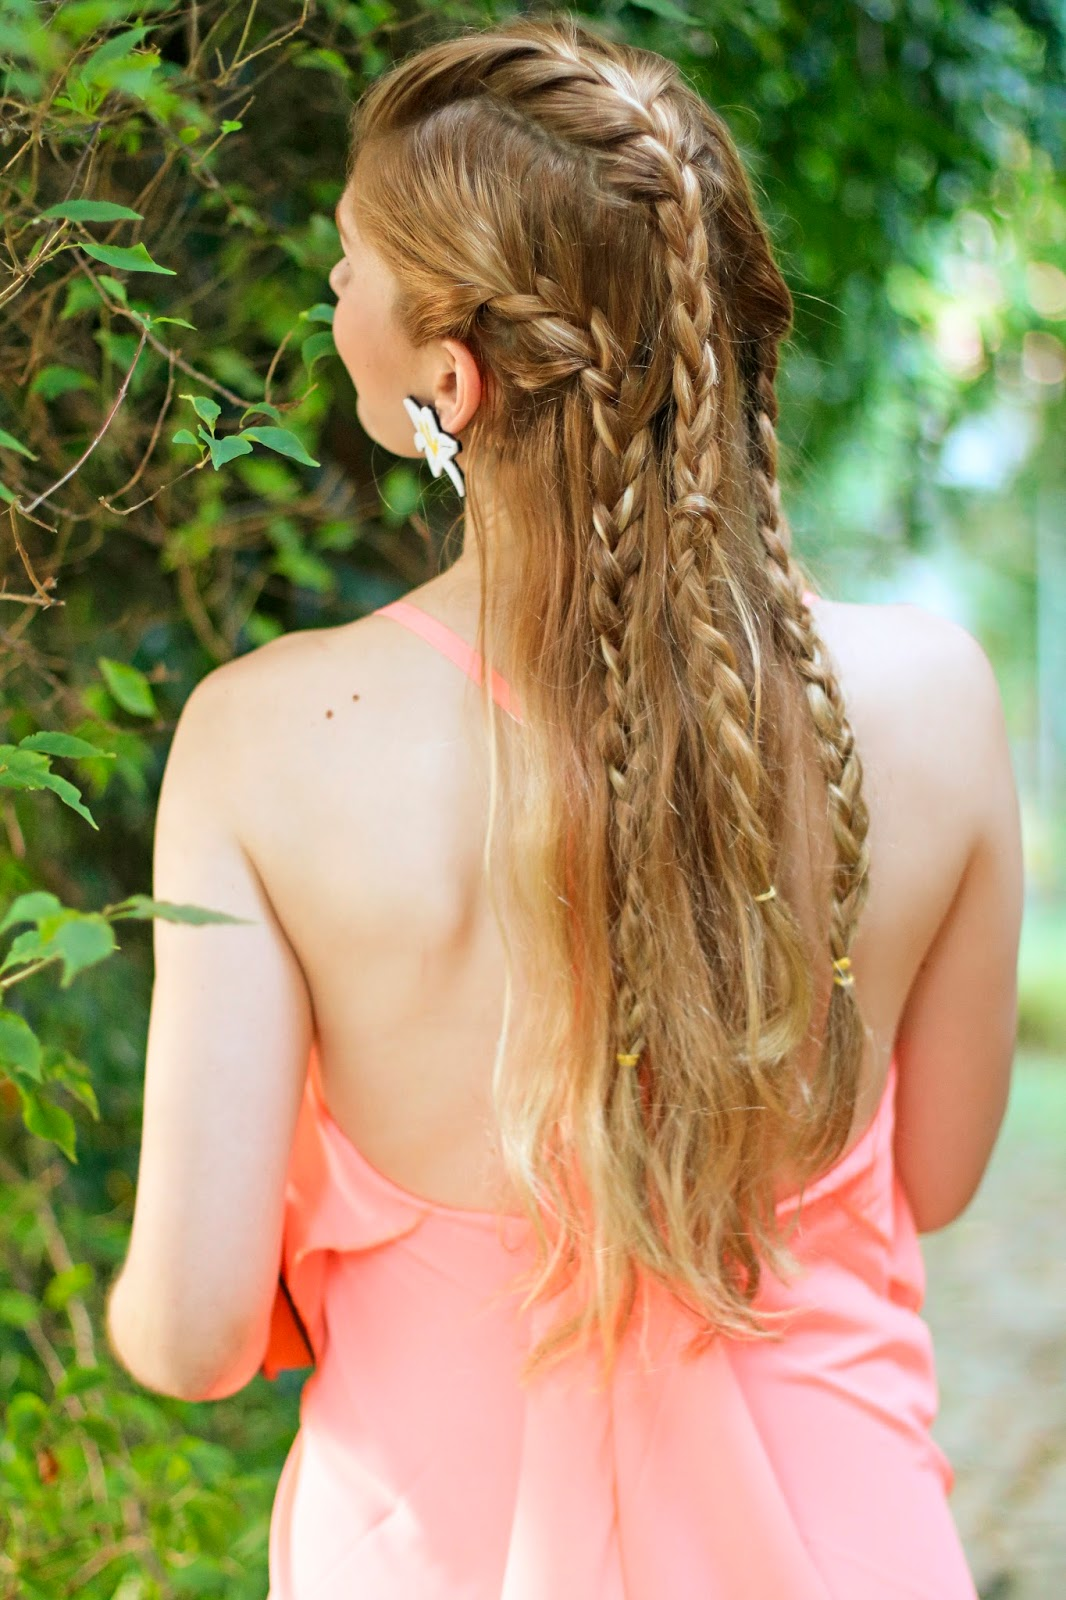 Gorgeous boho chic summer braided hairstyle!